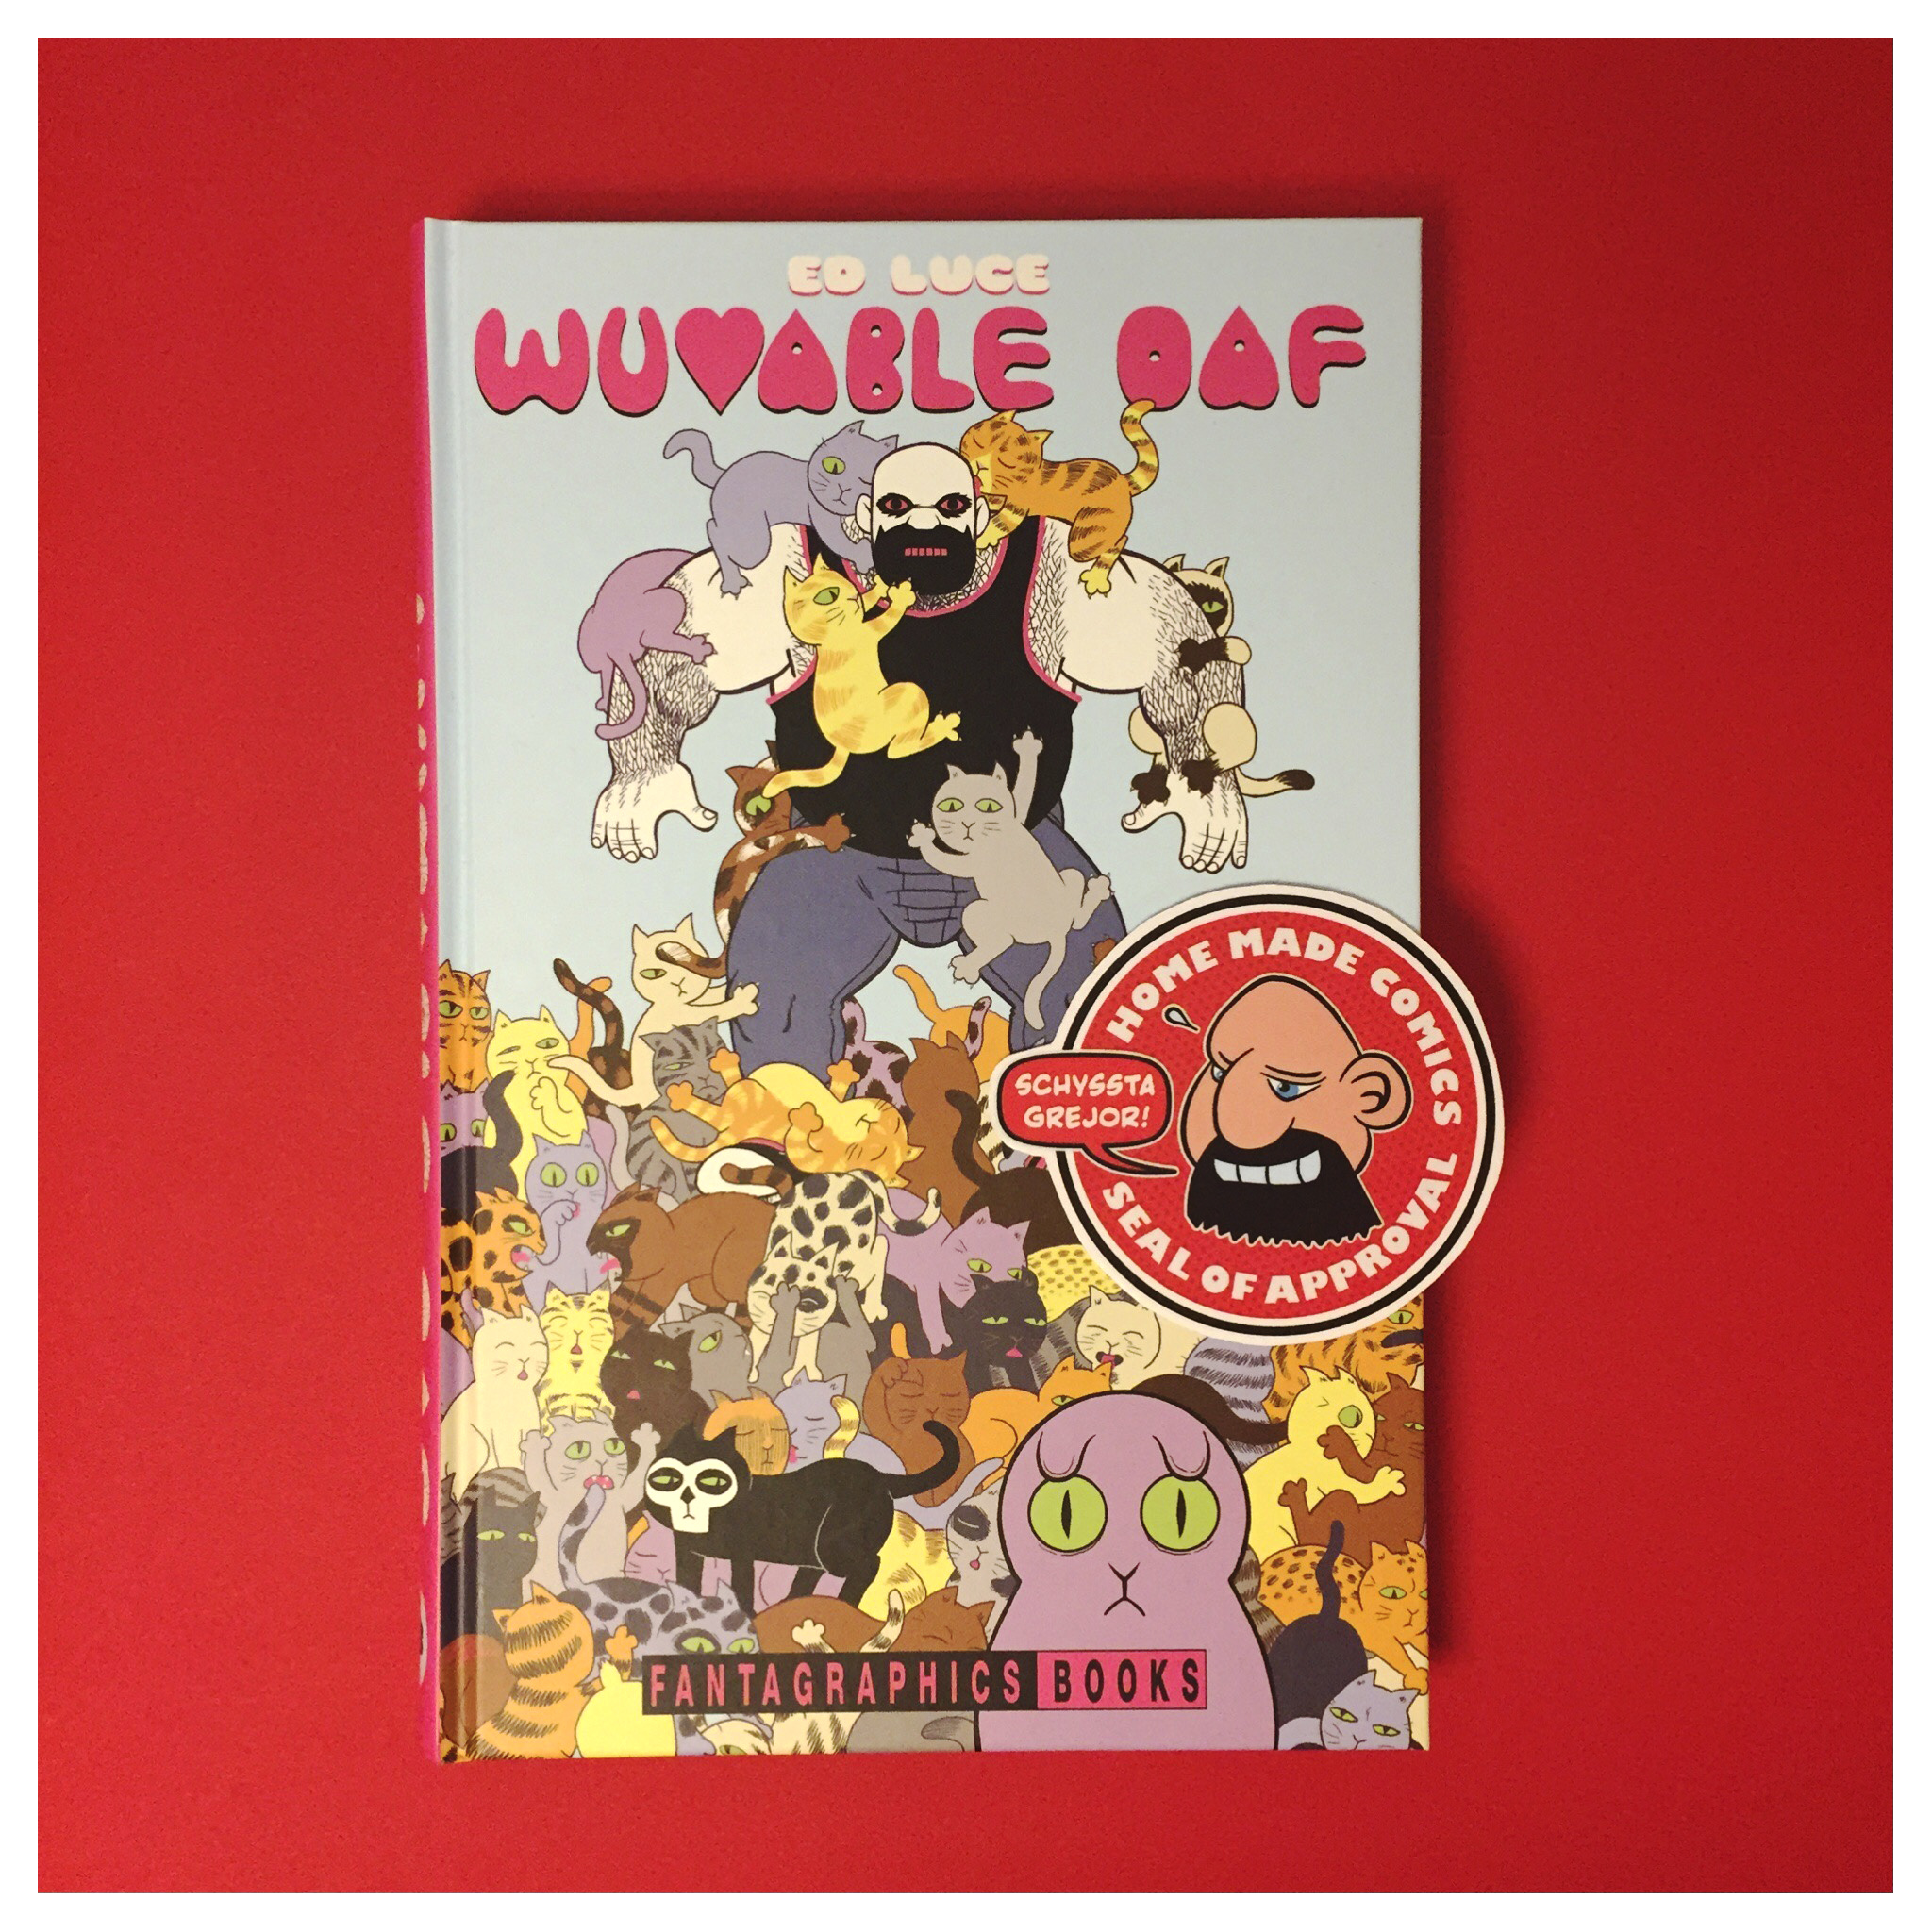 239 Home Made Comics Seal of Approval #239. Wuvable Oaf av Ed Luce utgiven av Fantagraphics 2015.